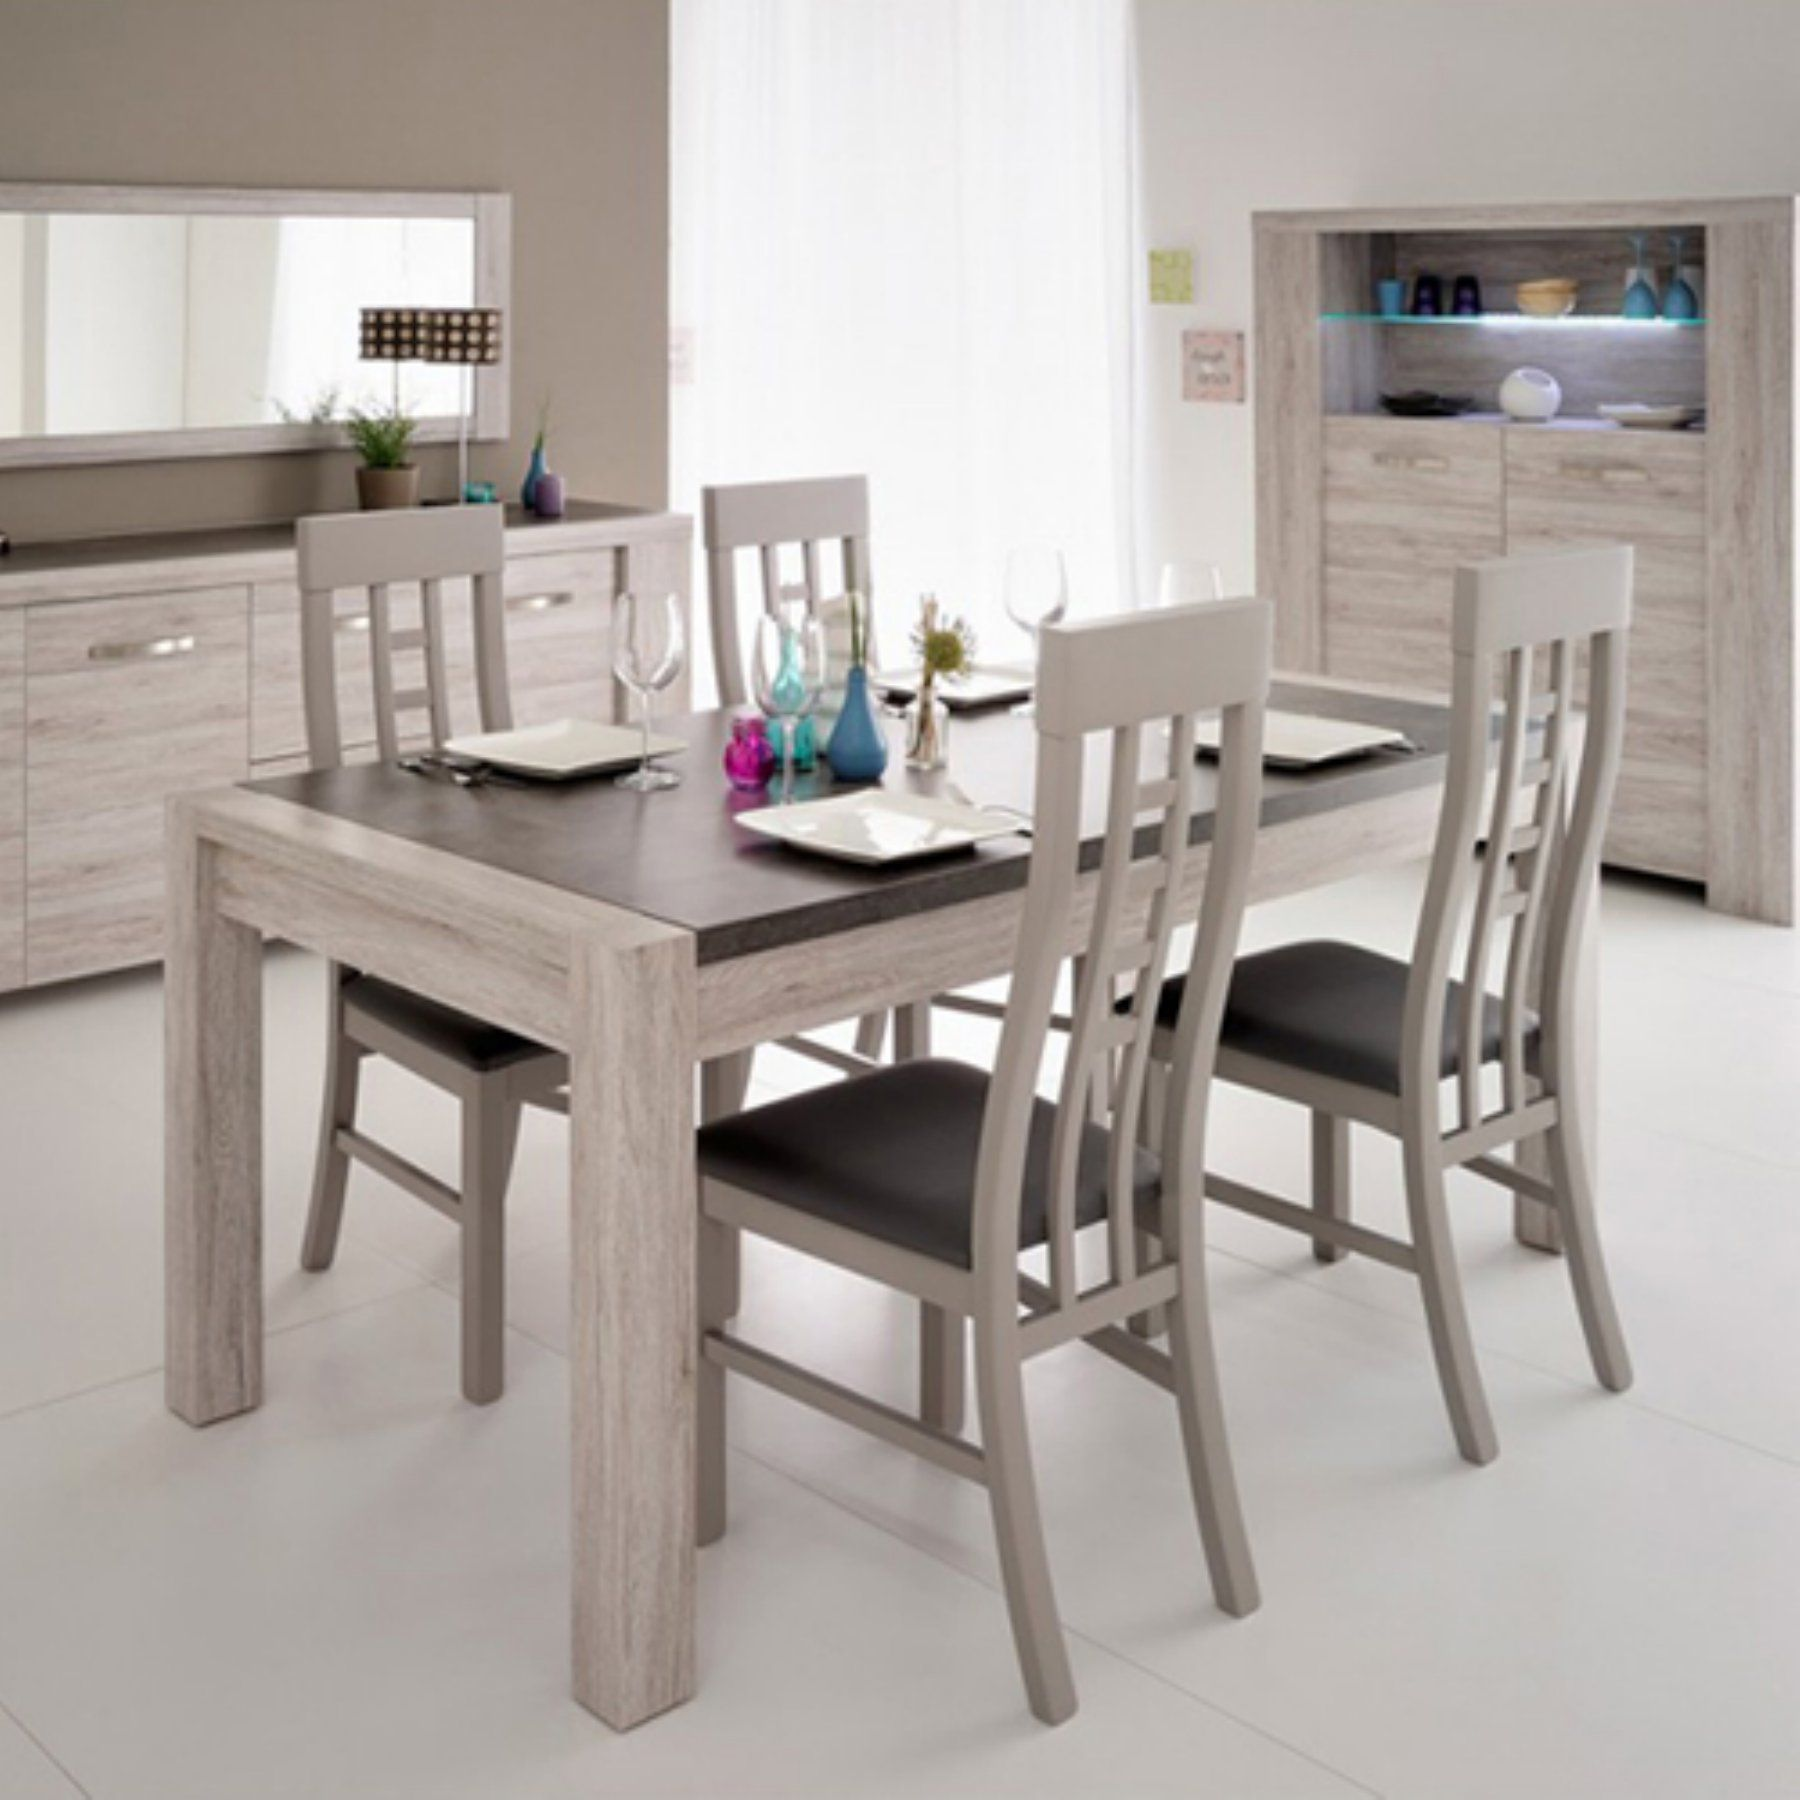 Parisot Malone Extendable Dining Table 0614ta18 01 Dining Table In Kitchen Dining Table Extendable Dining Table